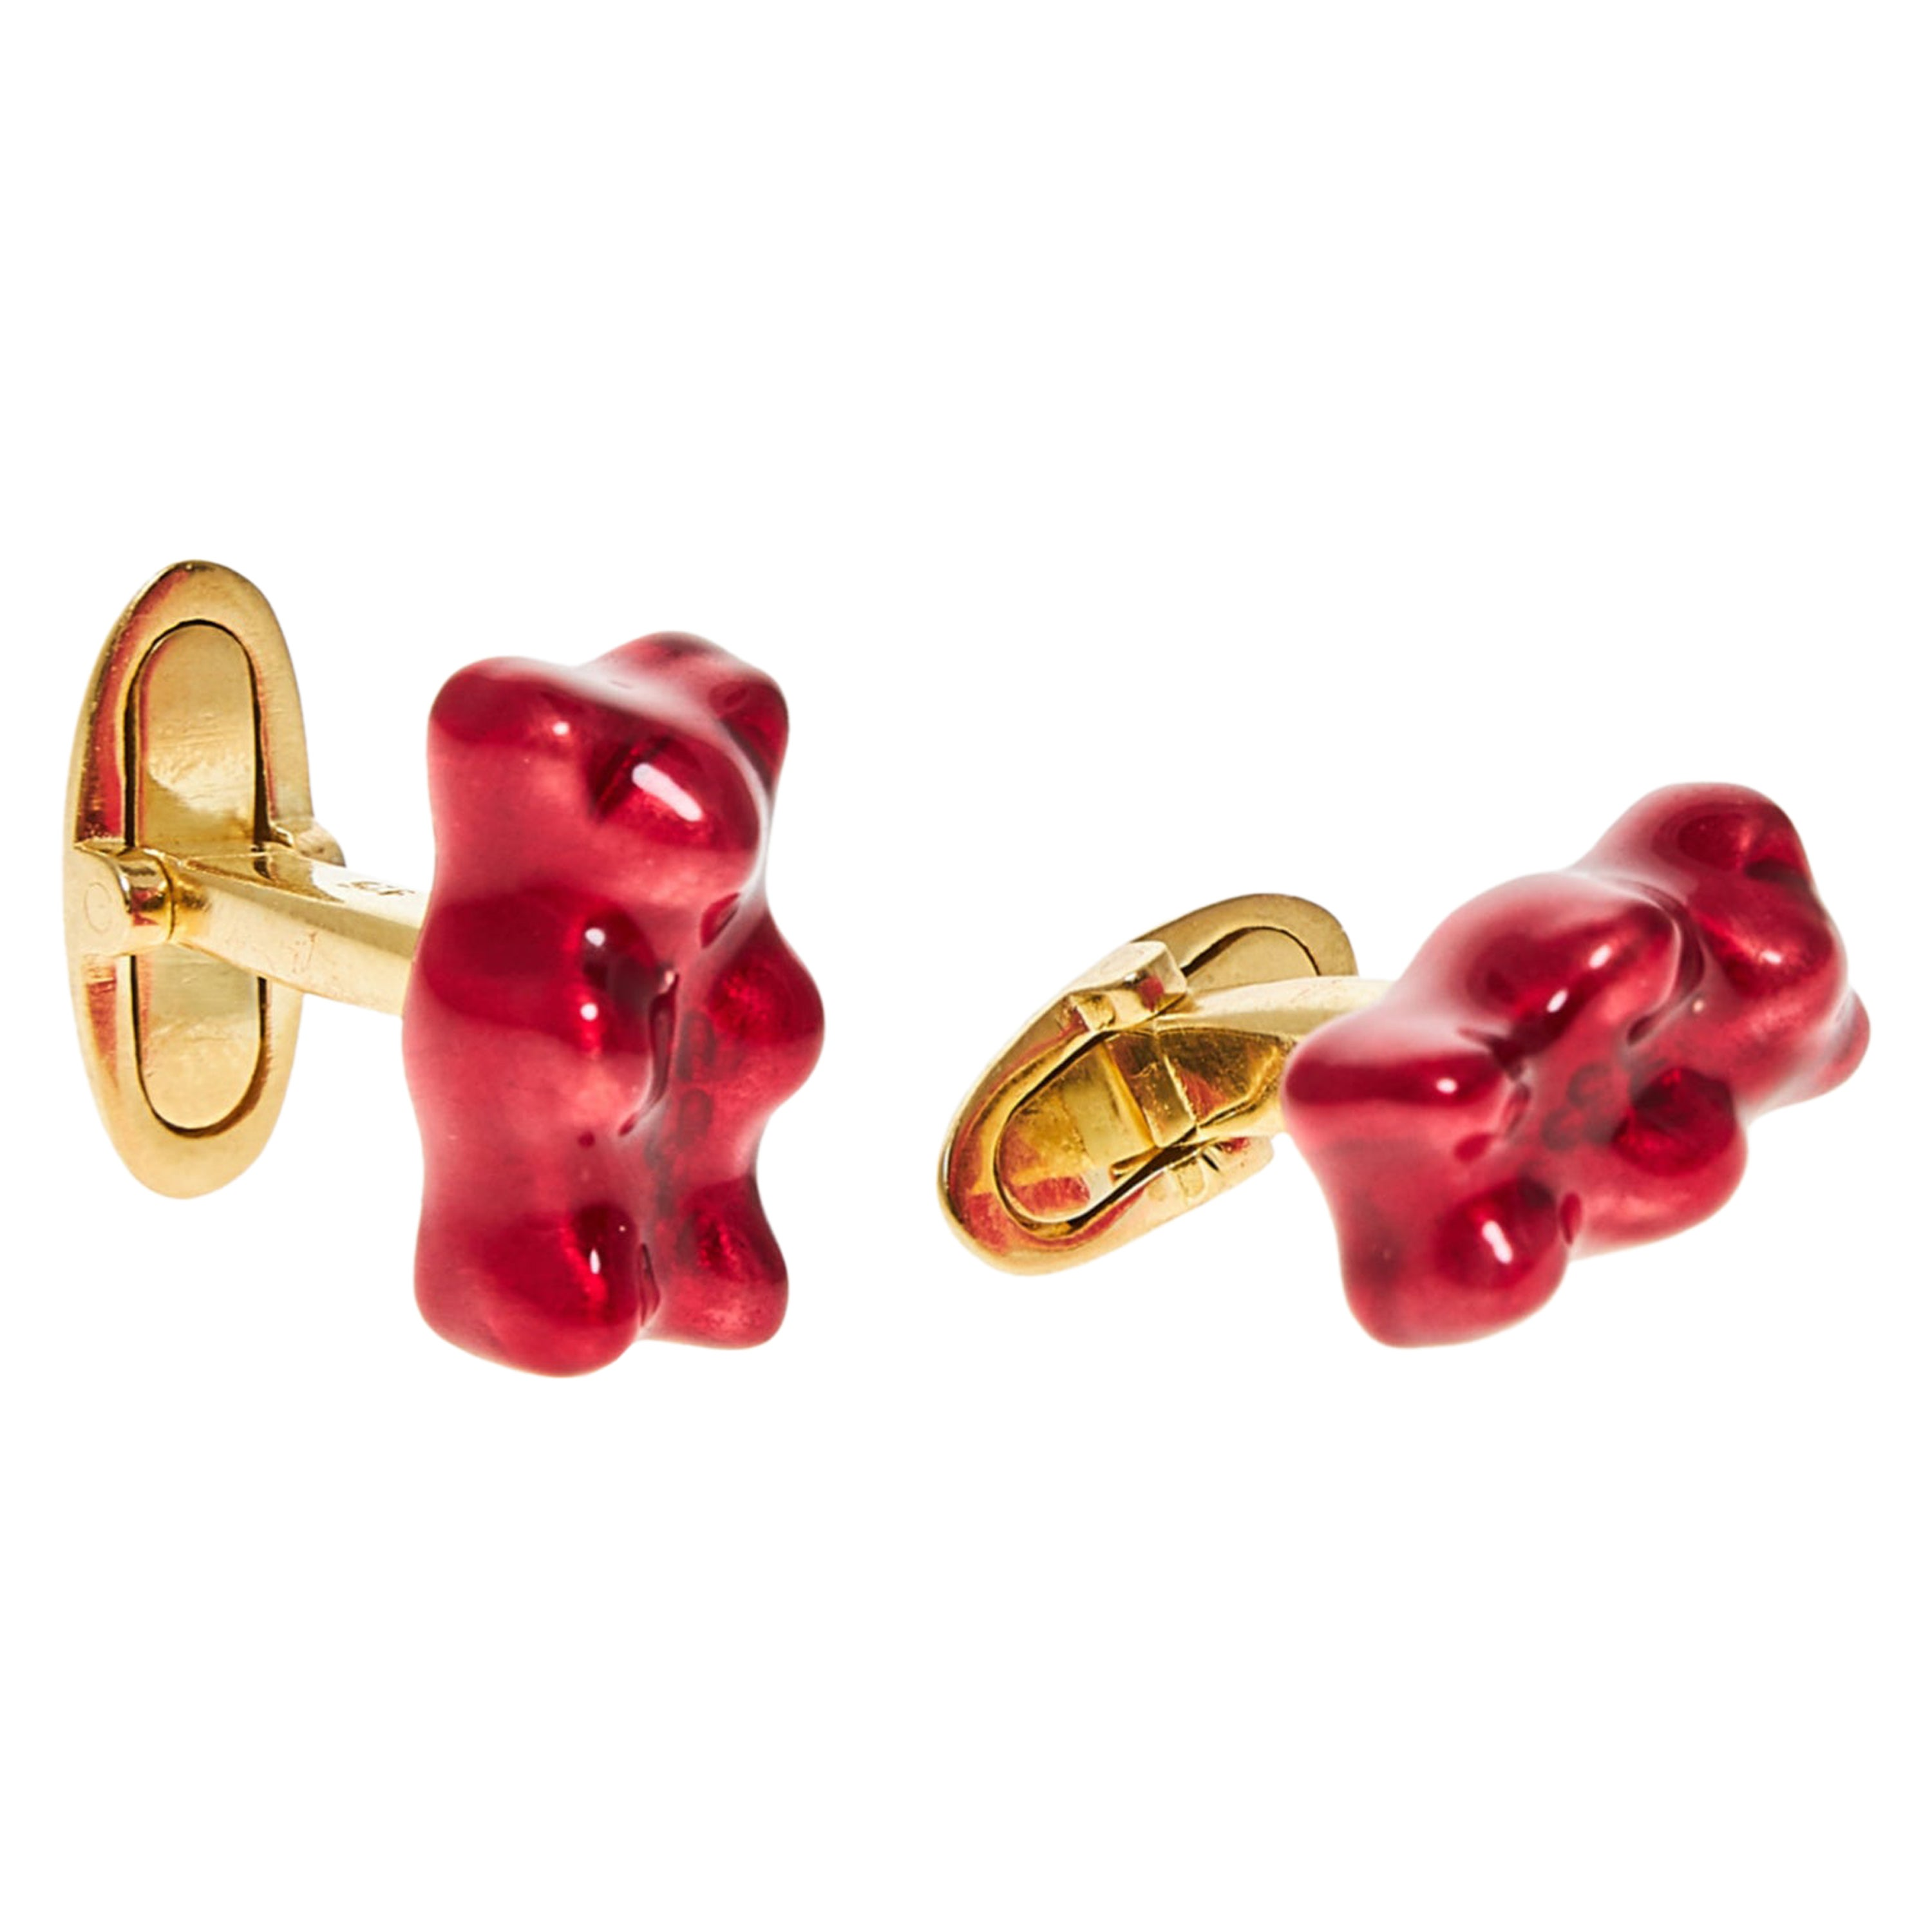 Cufflinks Gummy Bear Red Color Unisex Gift 18k Silver Gold-Plated Greek Jewelry